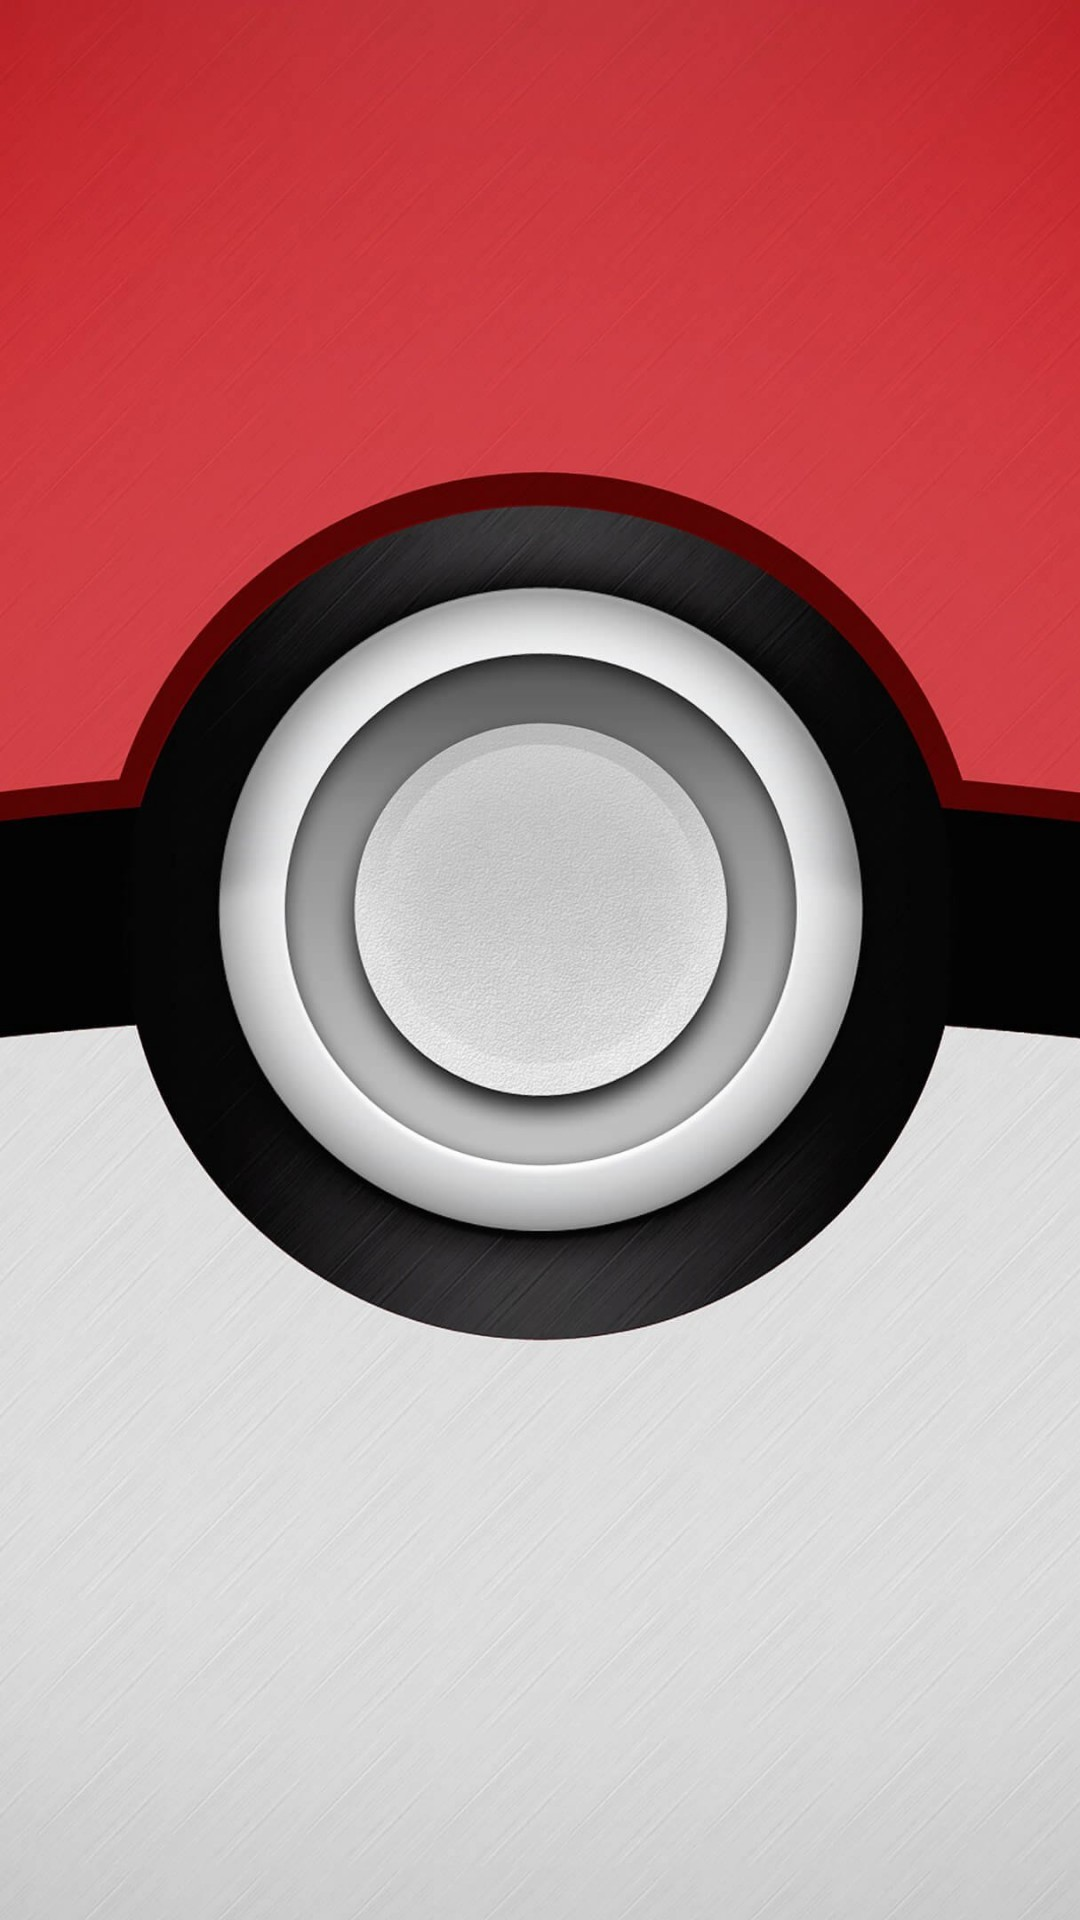 Pokeball Wallpaper for SONY Xperia Z1